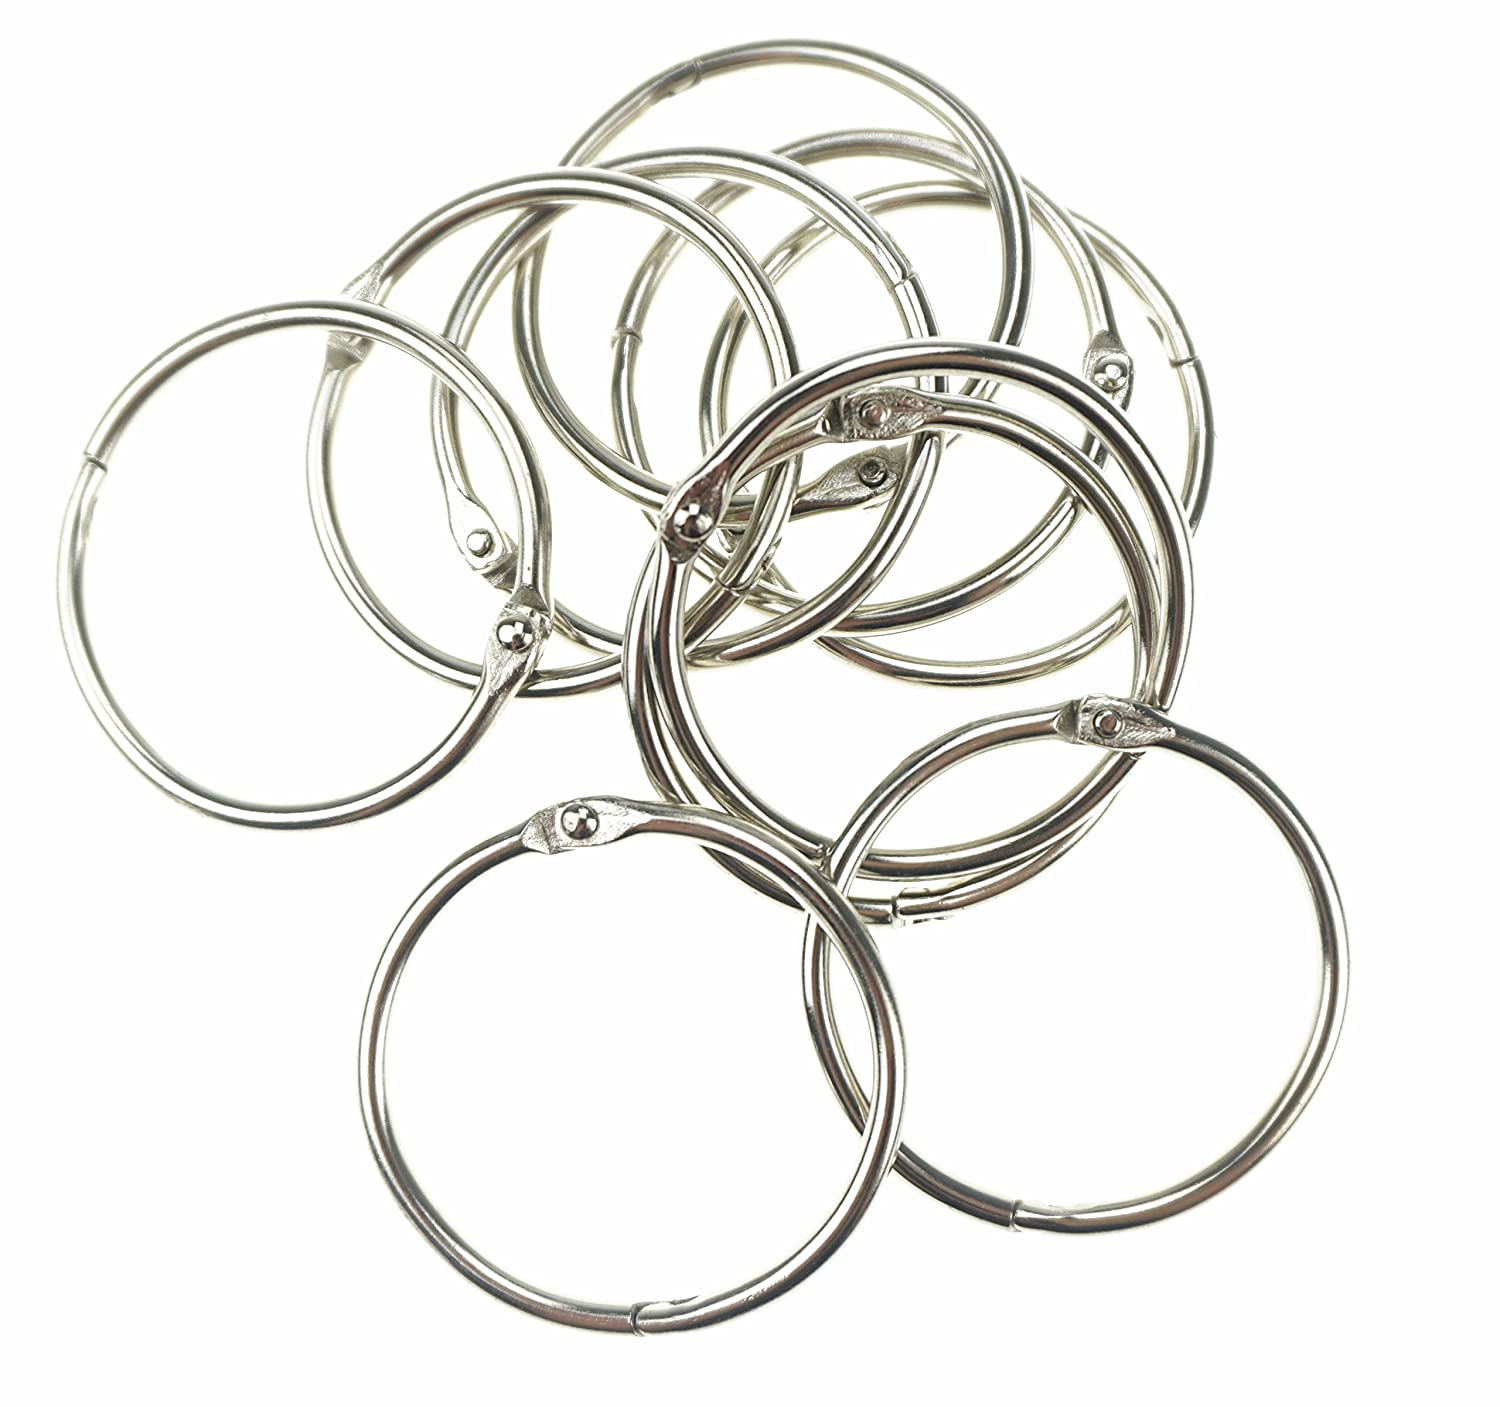 Bilipala 10 Pcs Loose Leaf Binder Rings Book Ring Keychain, Silver, 1.5-Inches 4336865042